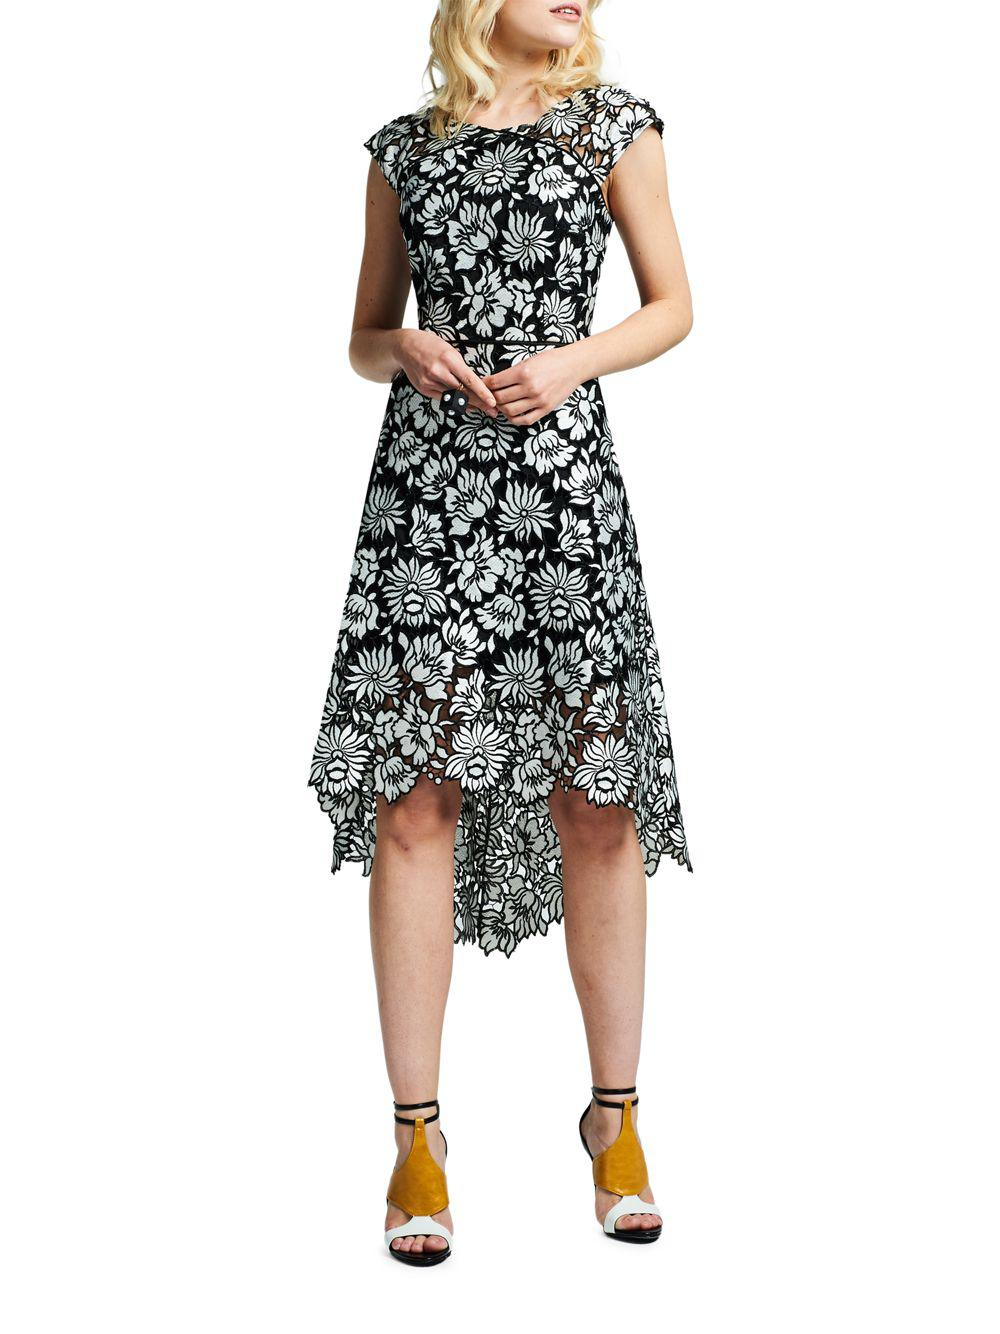 Lyst - Kay Unger Floral Pattern Asymmetric Dress in Black - Save 77%